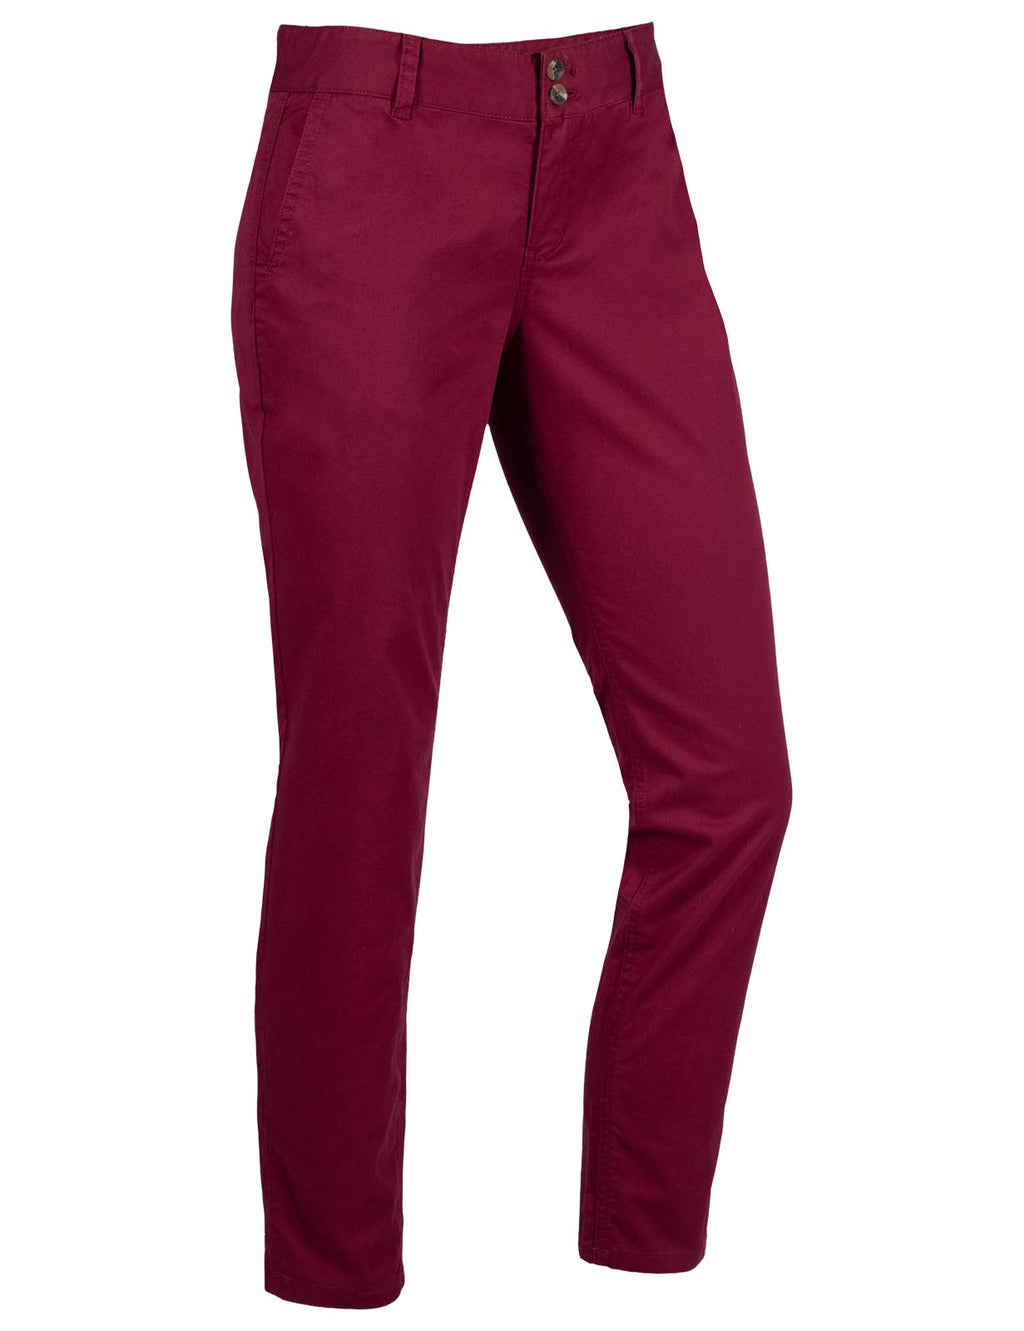 Women's Sadie Skinny Chino Pant | Mountain Khakis